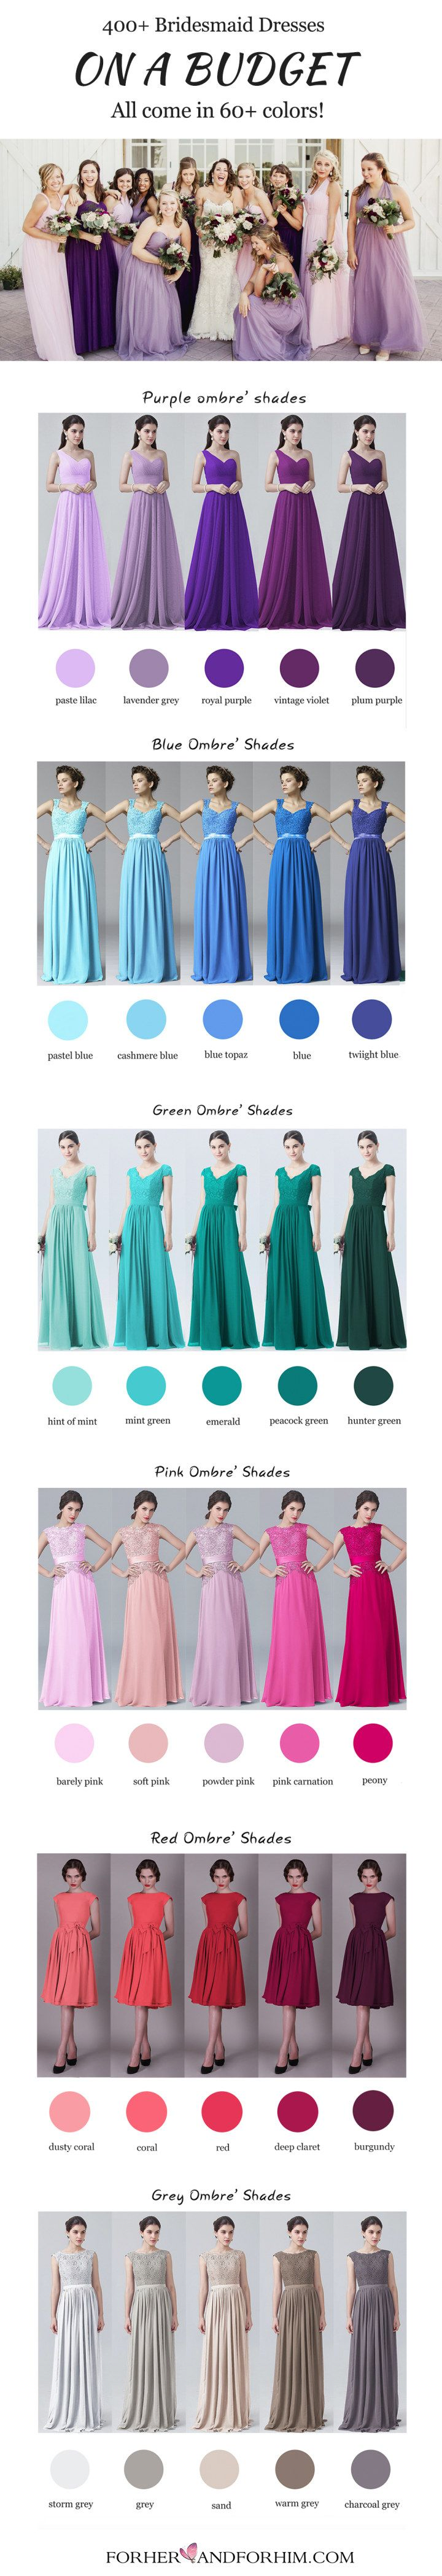 ALL bridesmaid dresses are on HUGE Autumn SALE now, don't miss it!